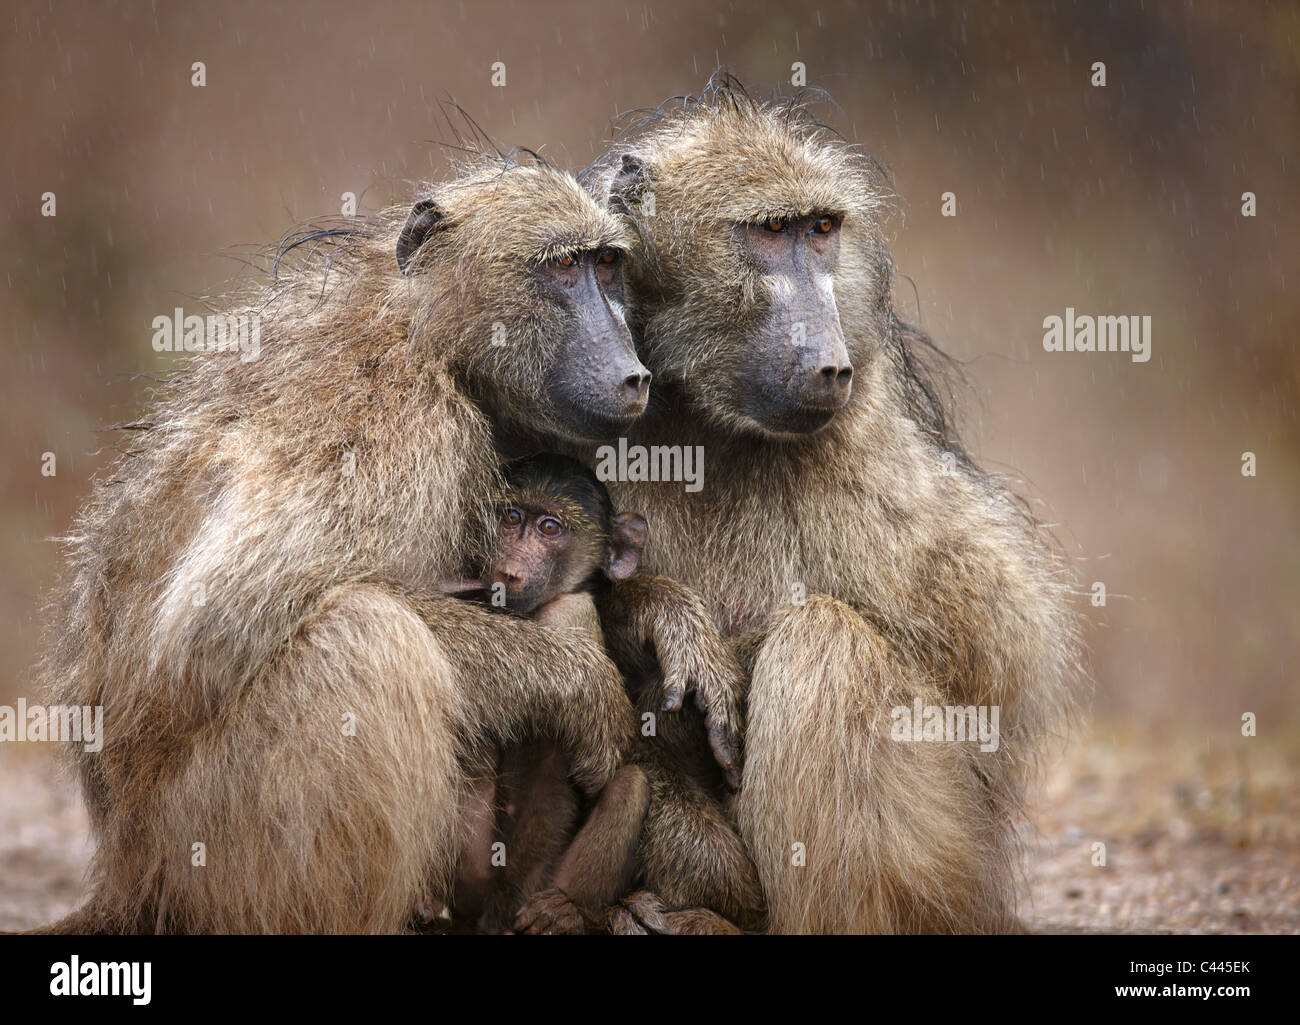 Two adult baboons protecting an infant from falling rain; Kruger National Park; South Africa - Stock Image